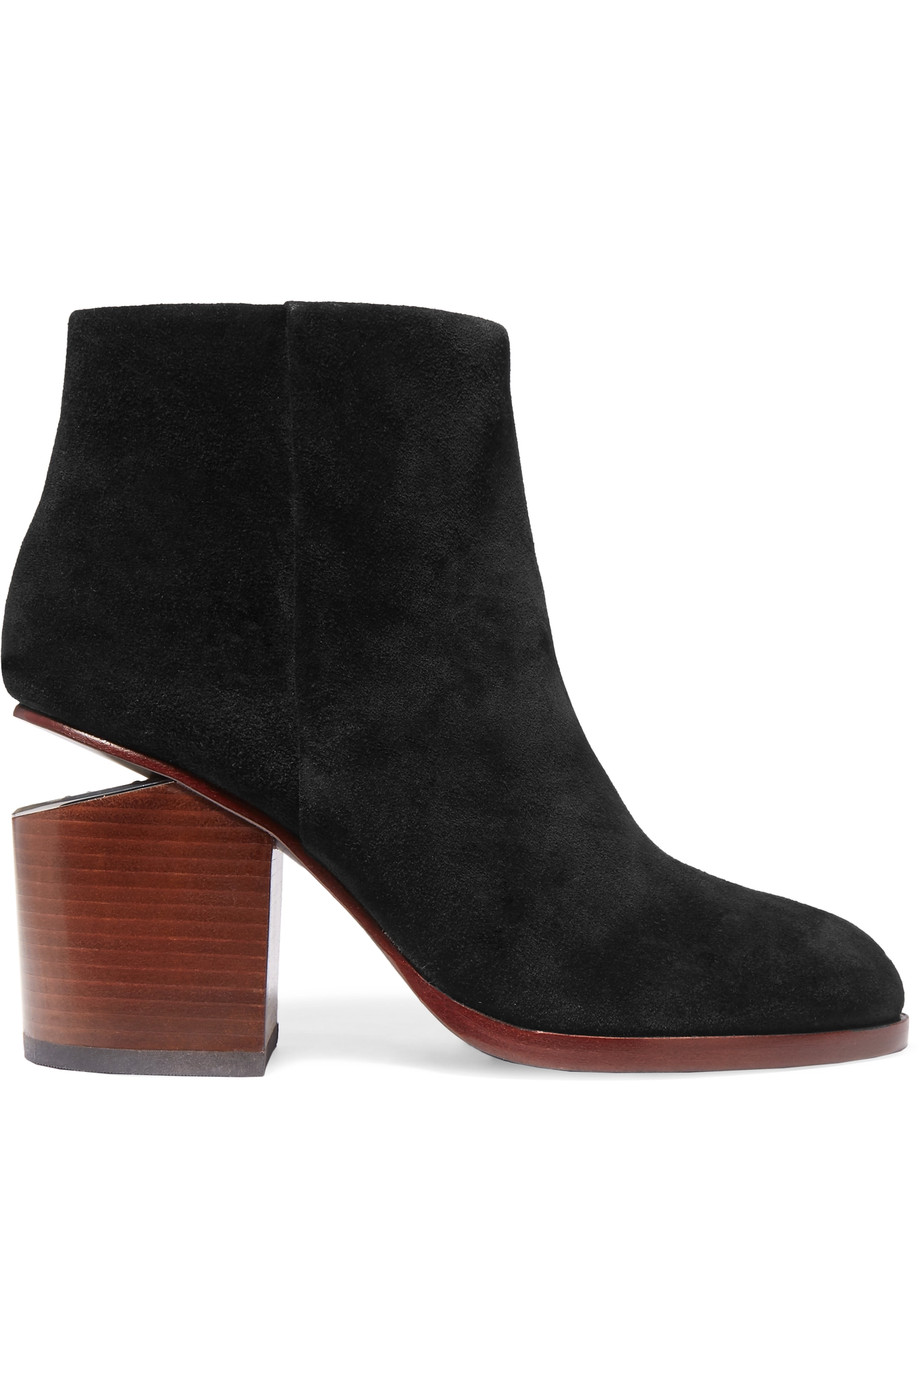 Alexander Wang Suedes Gabi cutout suede ankle boots